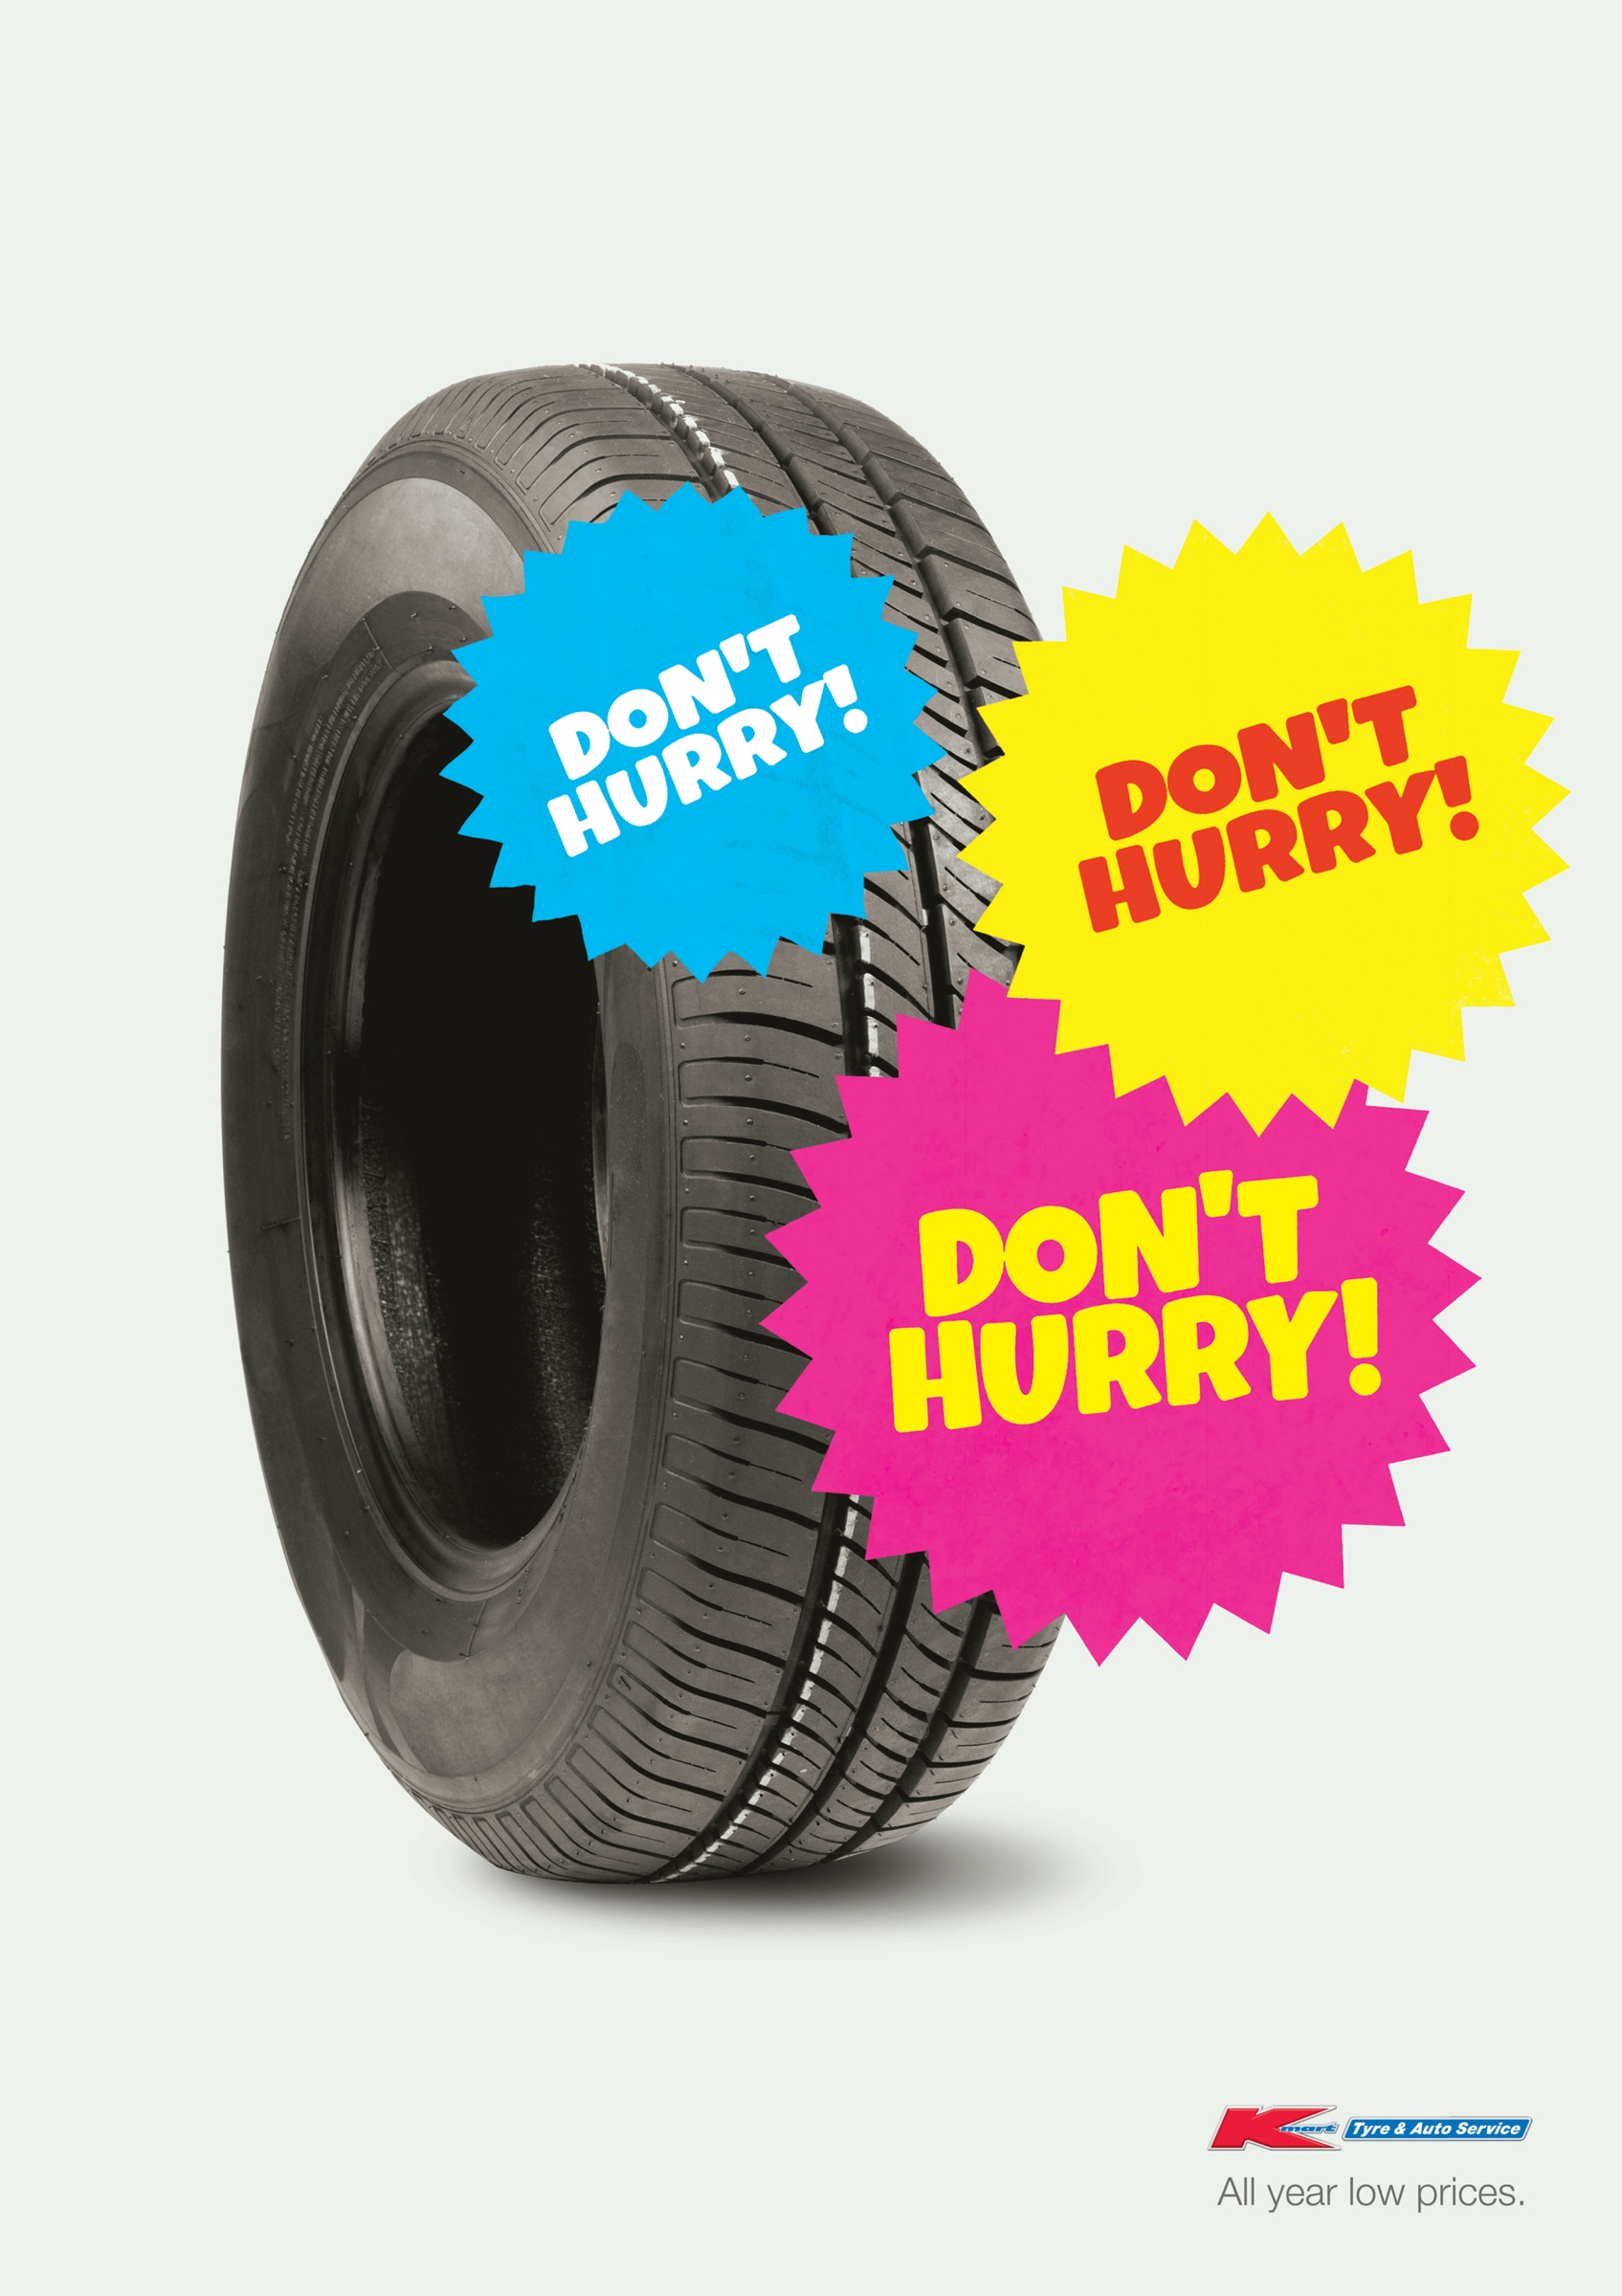 Kmart Tyre Amp Auto Service Hurry Time Prices Adeevee